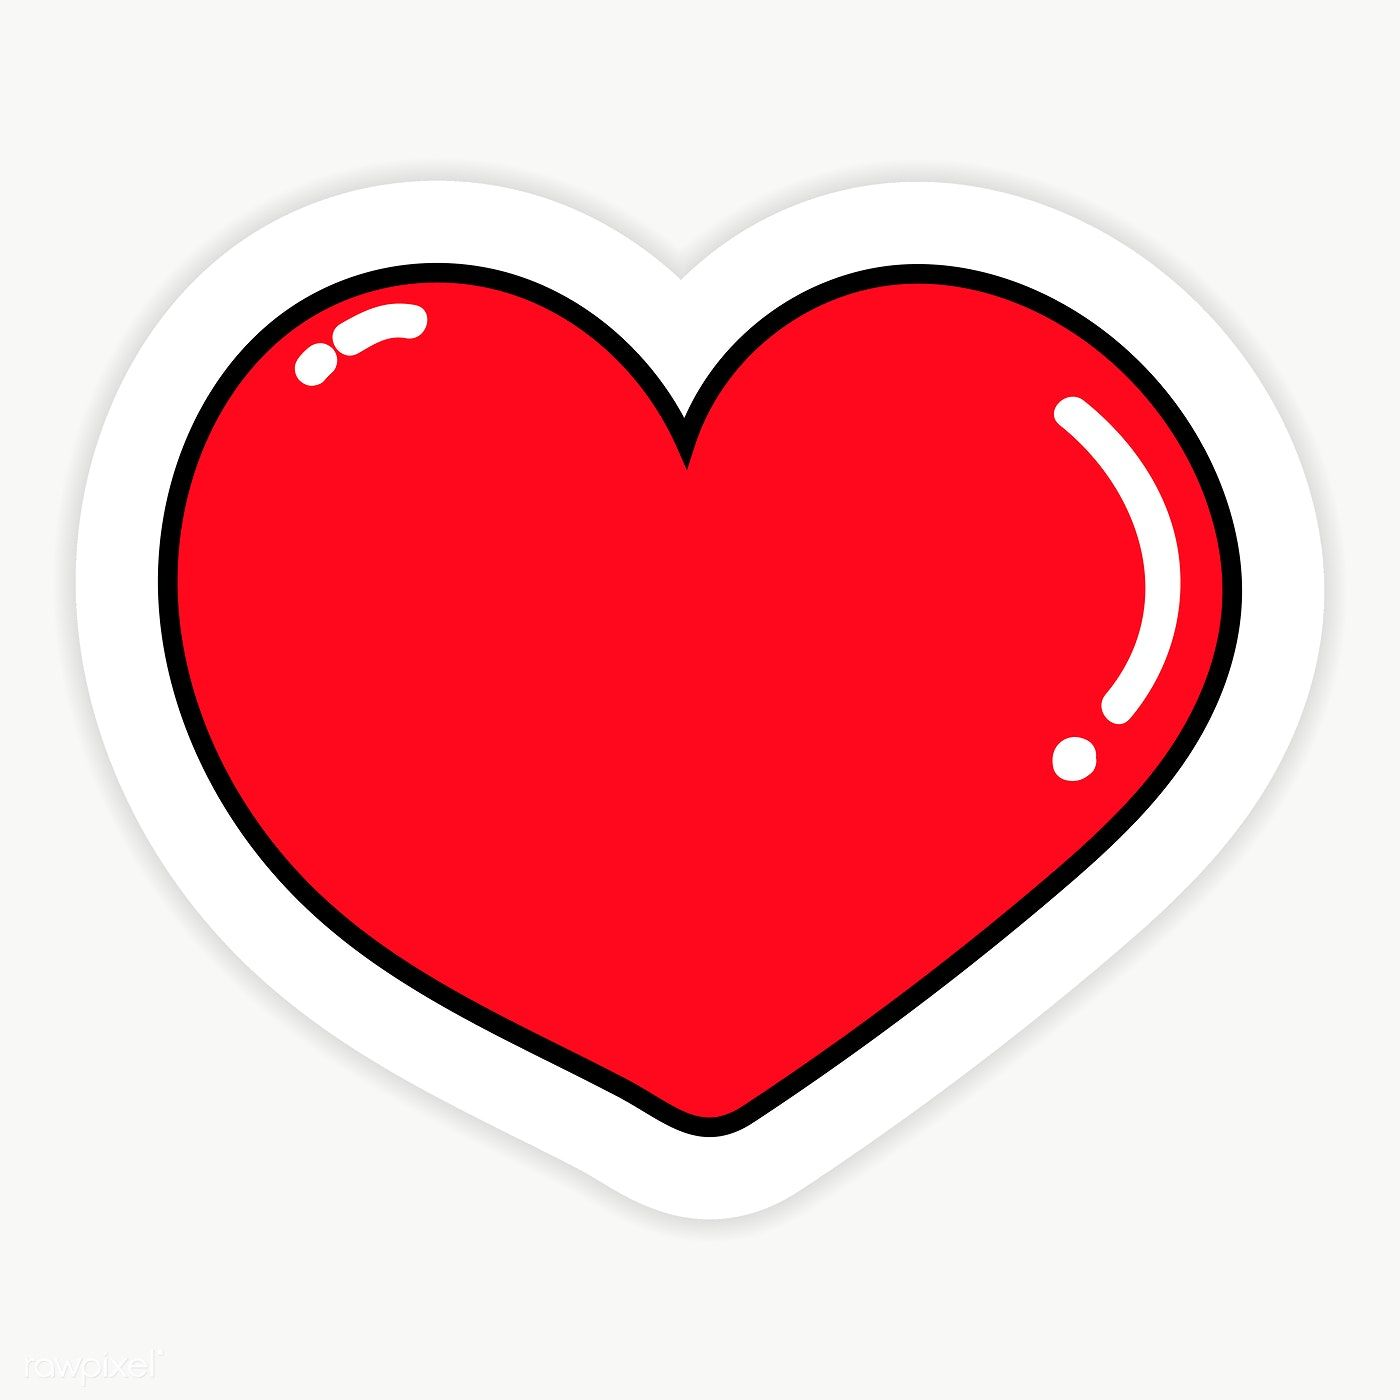 Shiny Red Heart Shaped Transparent Png Premium Image By Rawpixel Com Sasi Red Heart Stickers Pink Heart Background Print Stickers